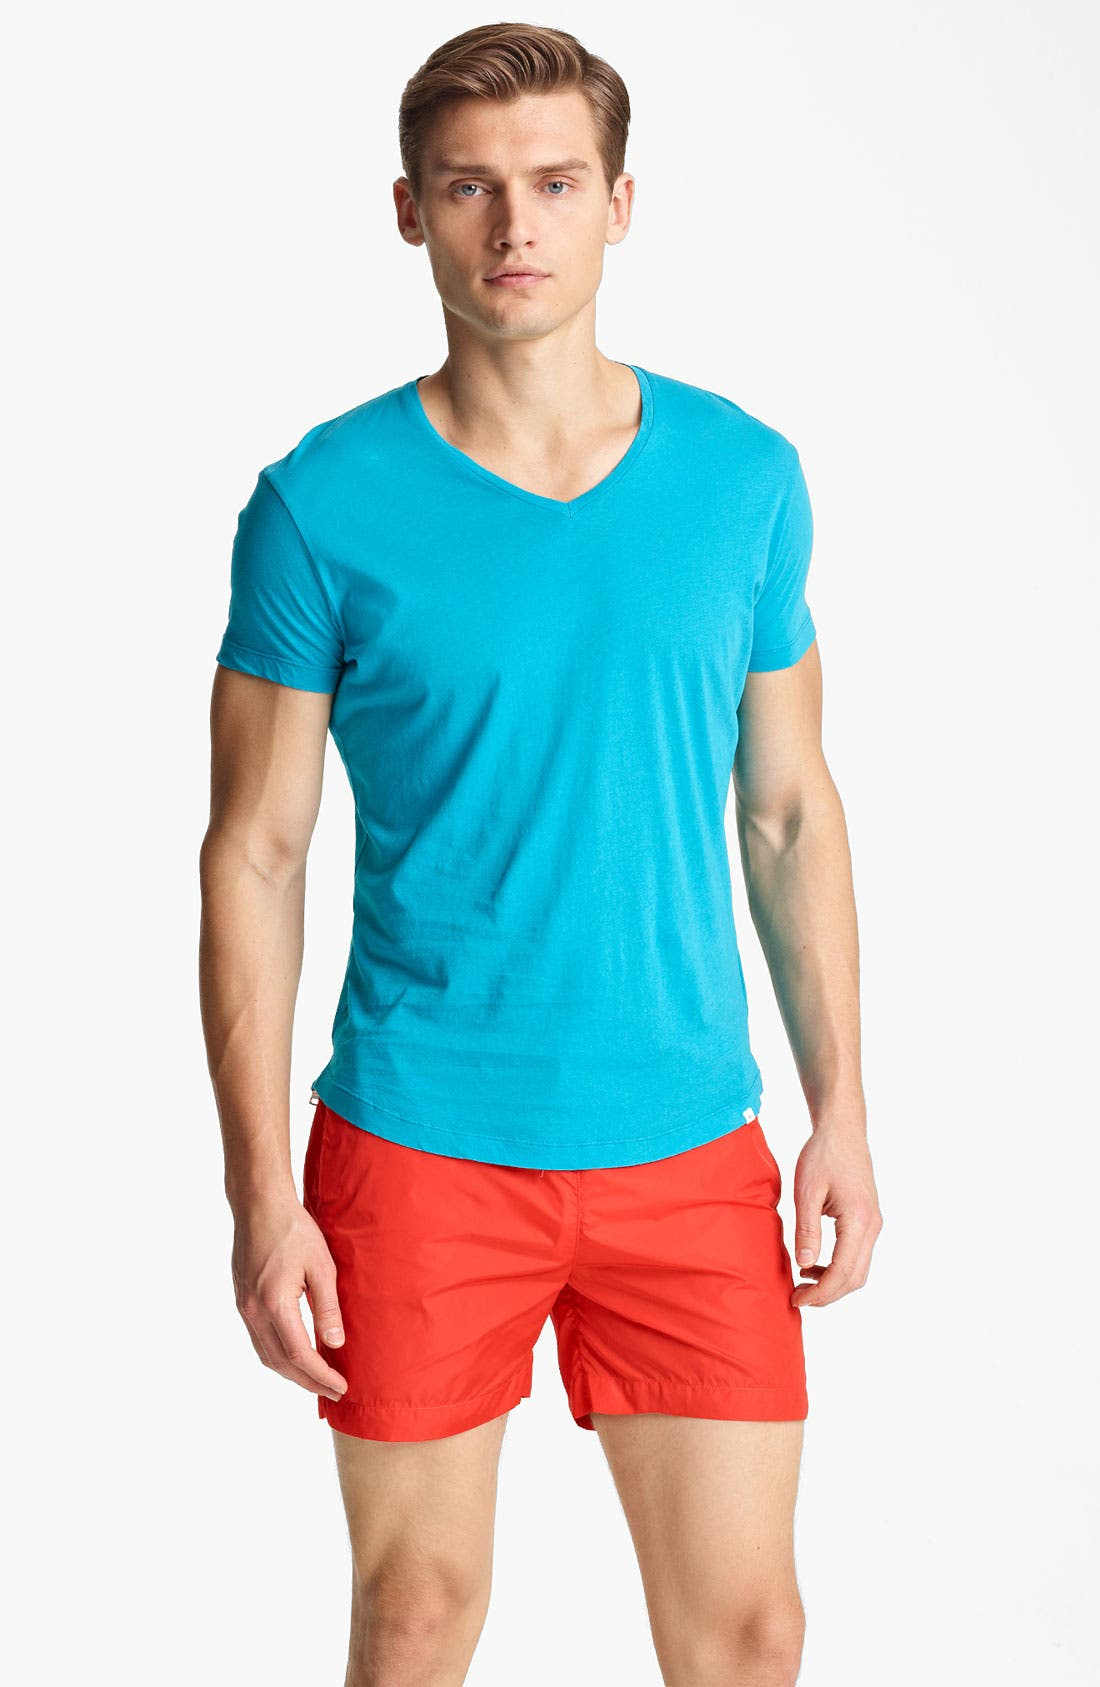 Alternate Image 1 Selected - Orlebar Brown 'Bobby' V-Neck T-Shirt